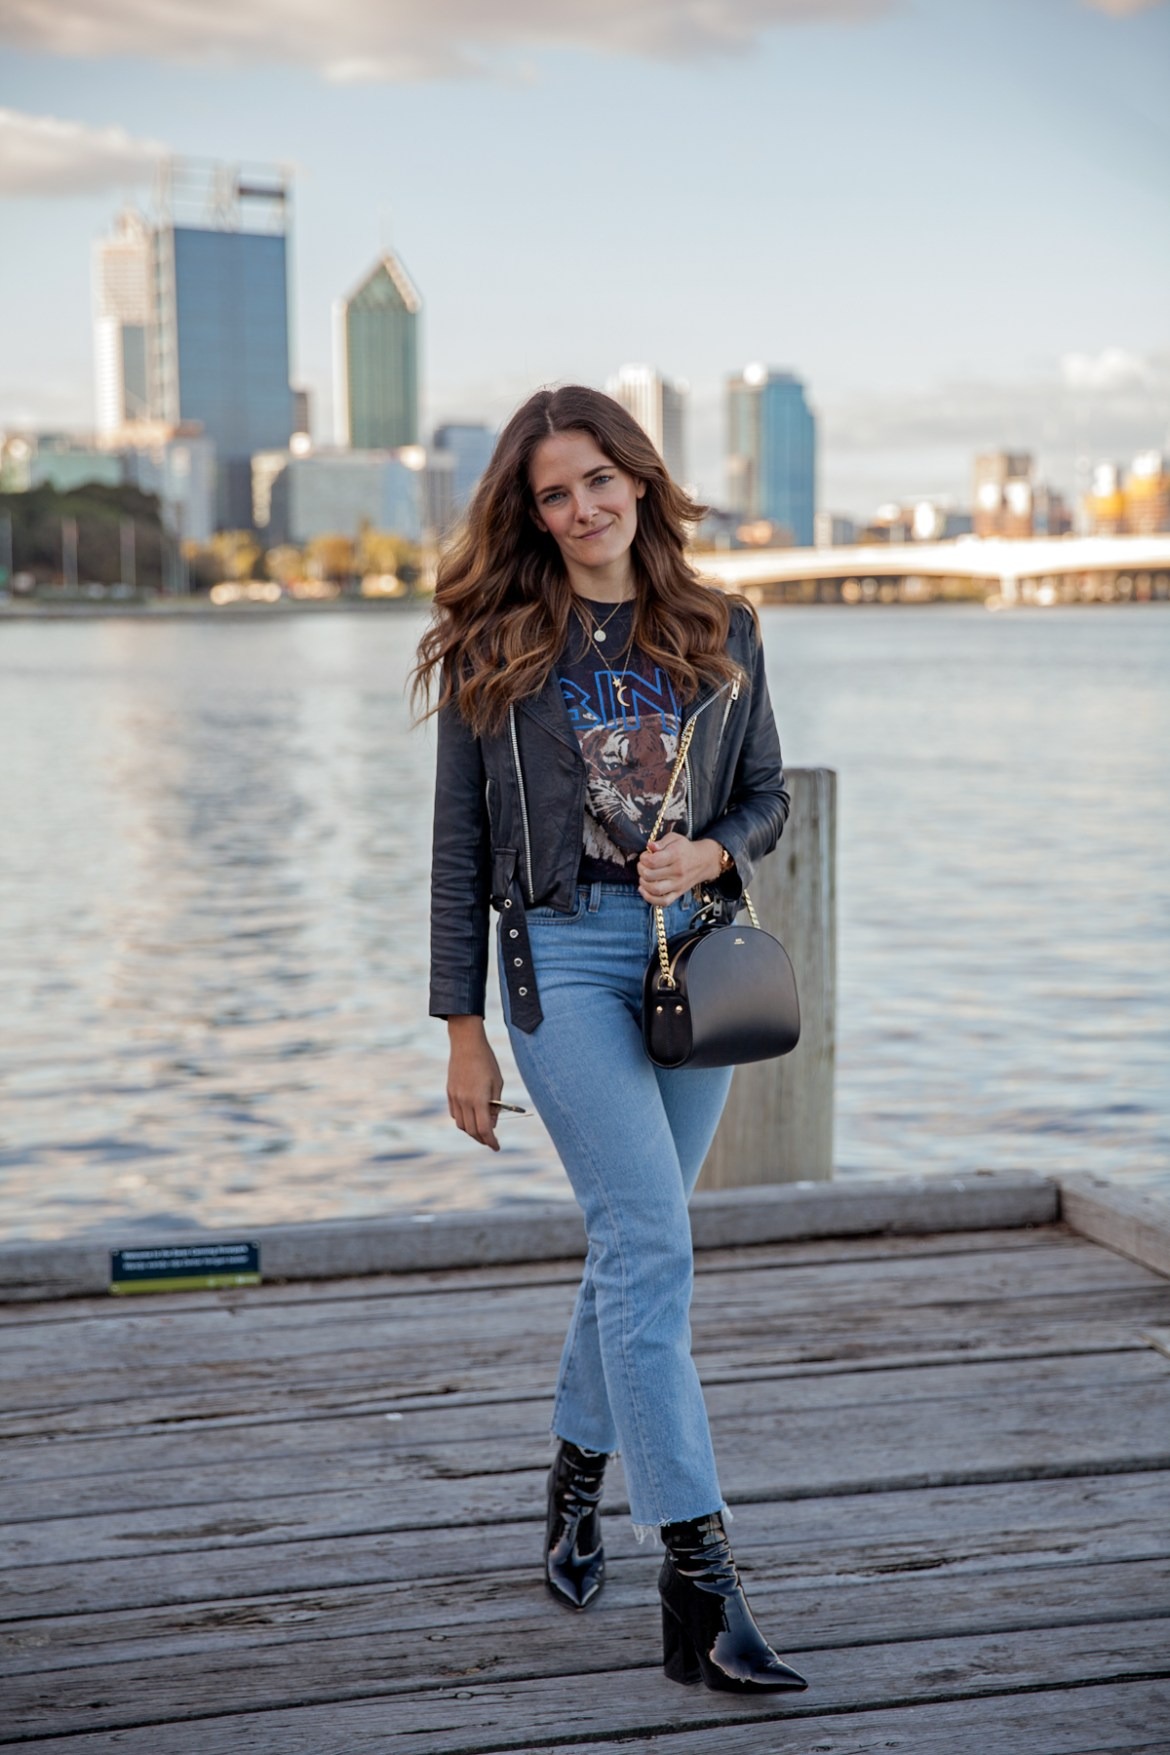 Anine Bing graphic tee, Levi's jeans, leather jacket and Alias Mae patent leather boots worn by Jenelle Witty, fashion blogger from Inspiring Wit in Perth